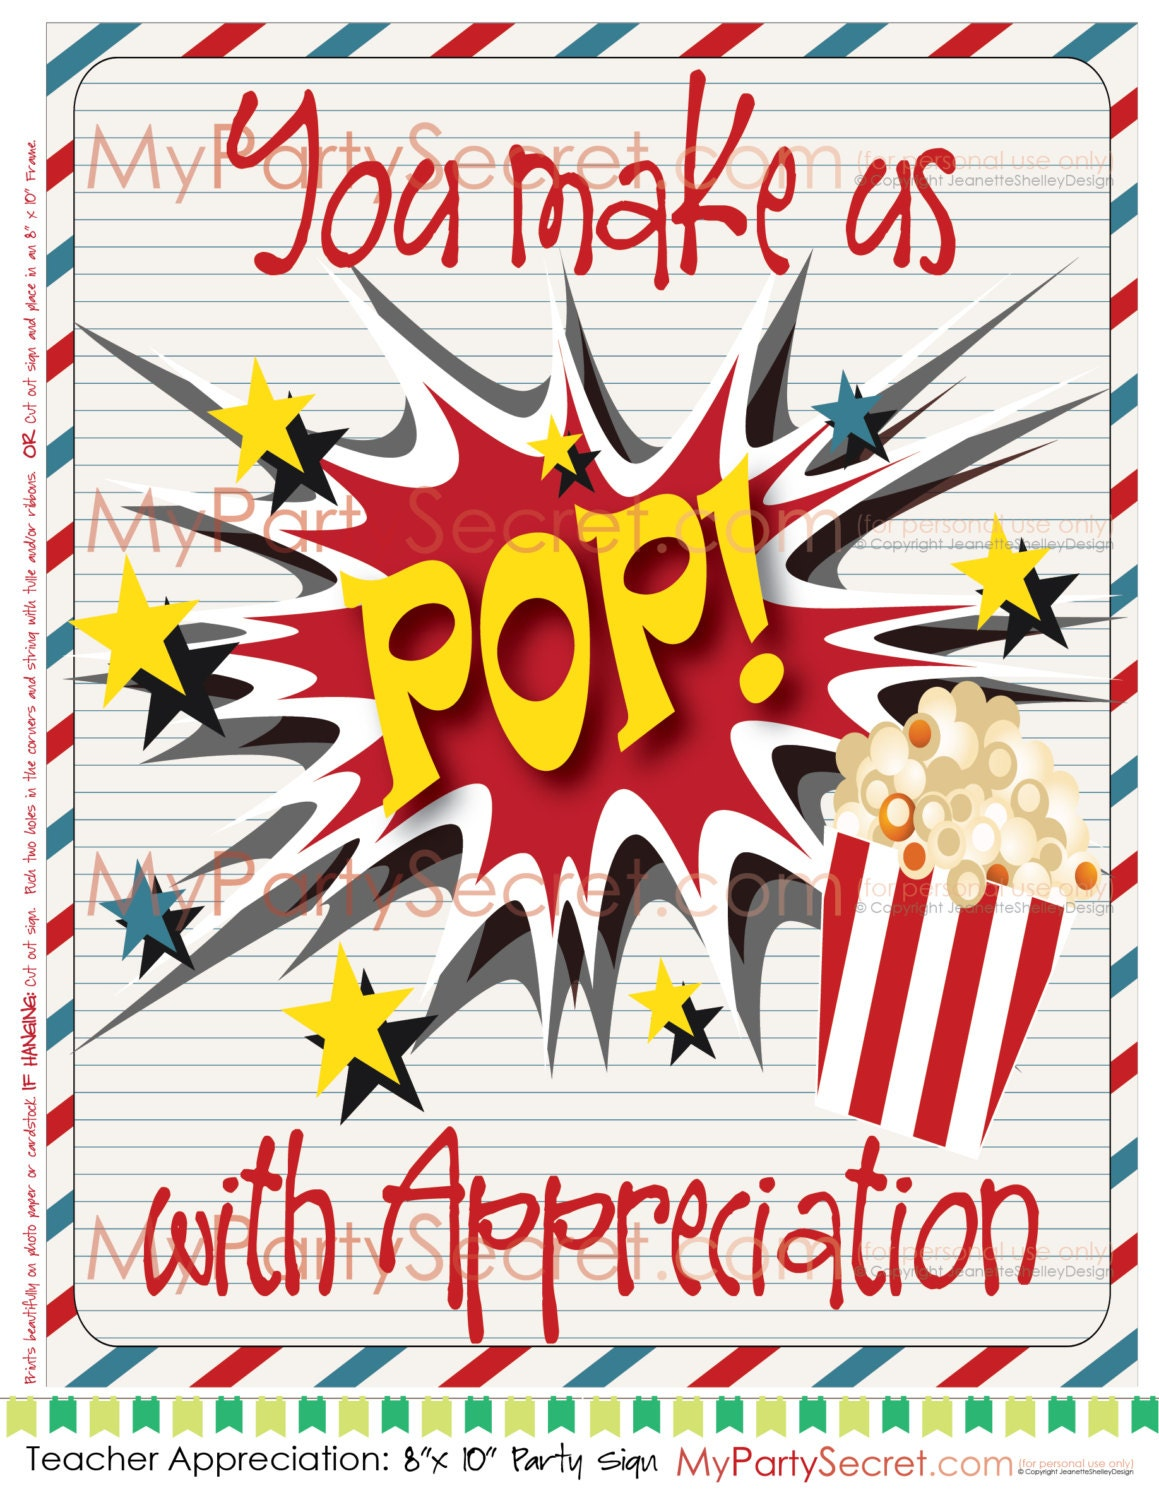 DIY Printable Teacher Appreciation Popcorn You Make Us